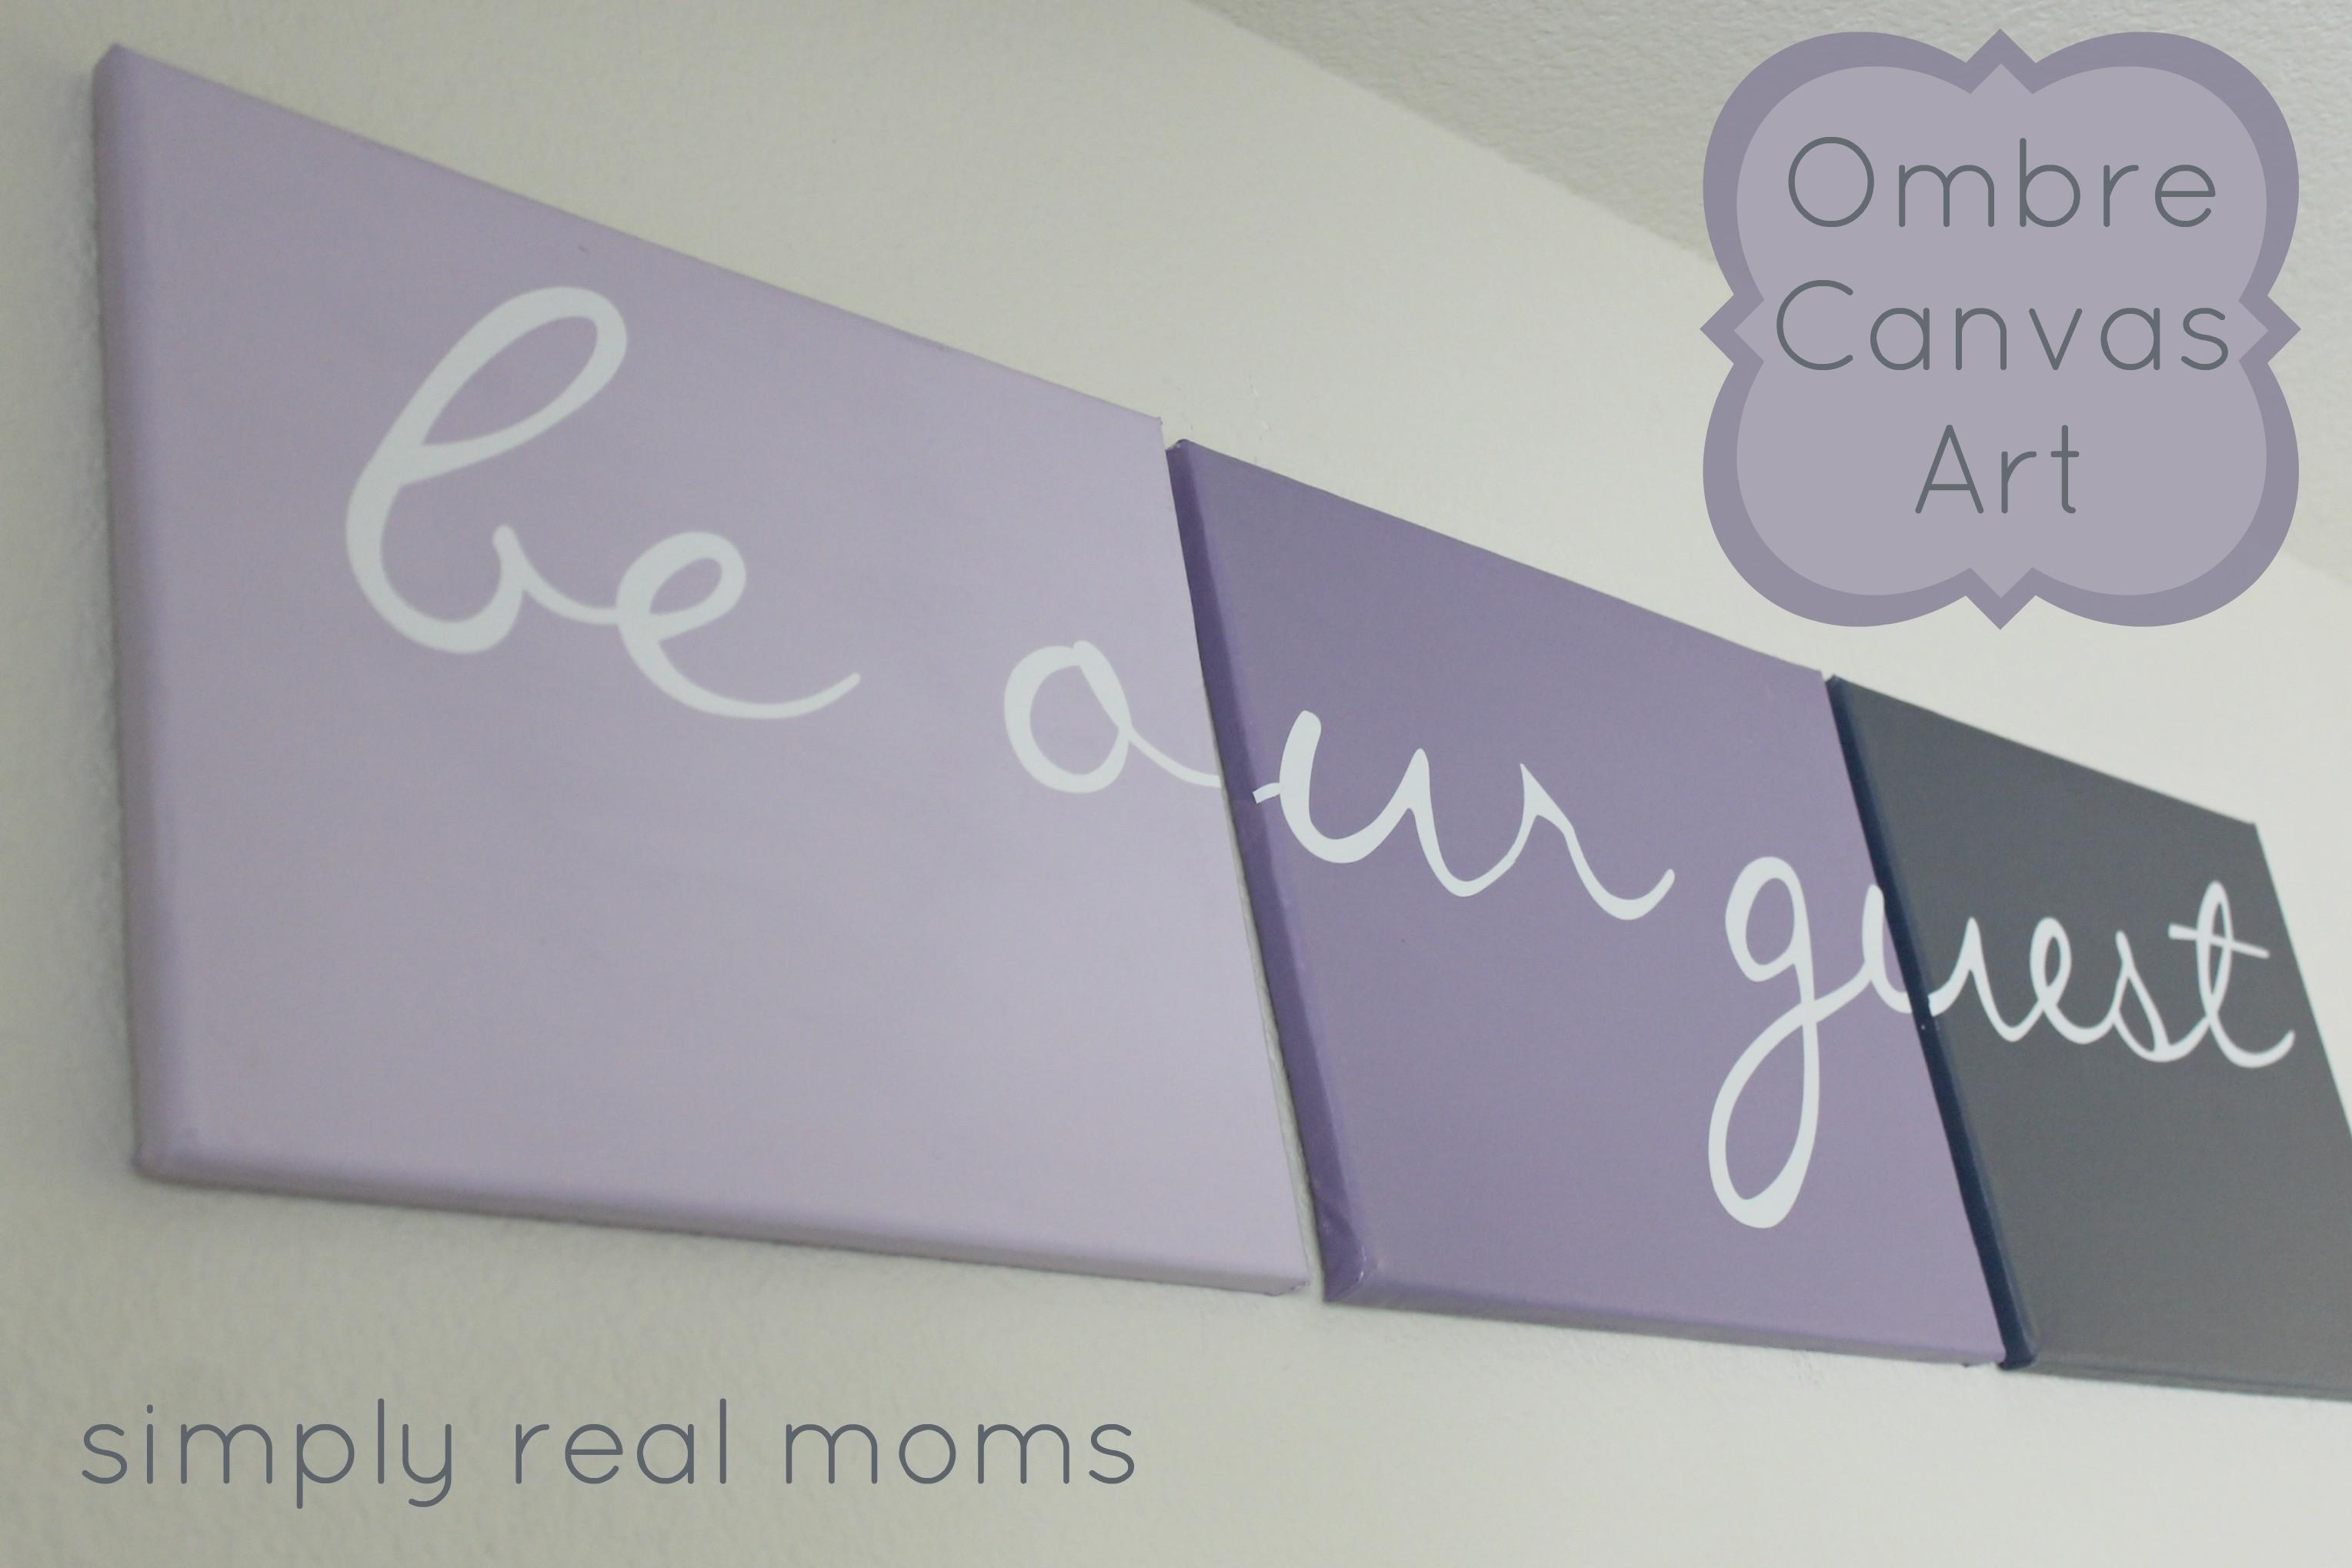 Simply Made Sunday Ombre Canvas Art